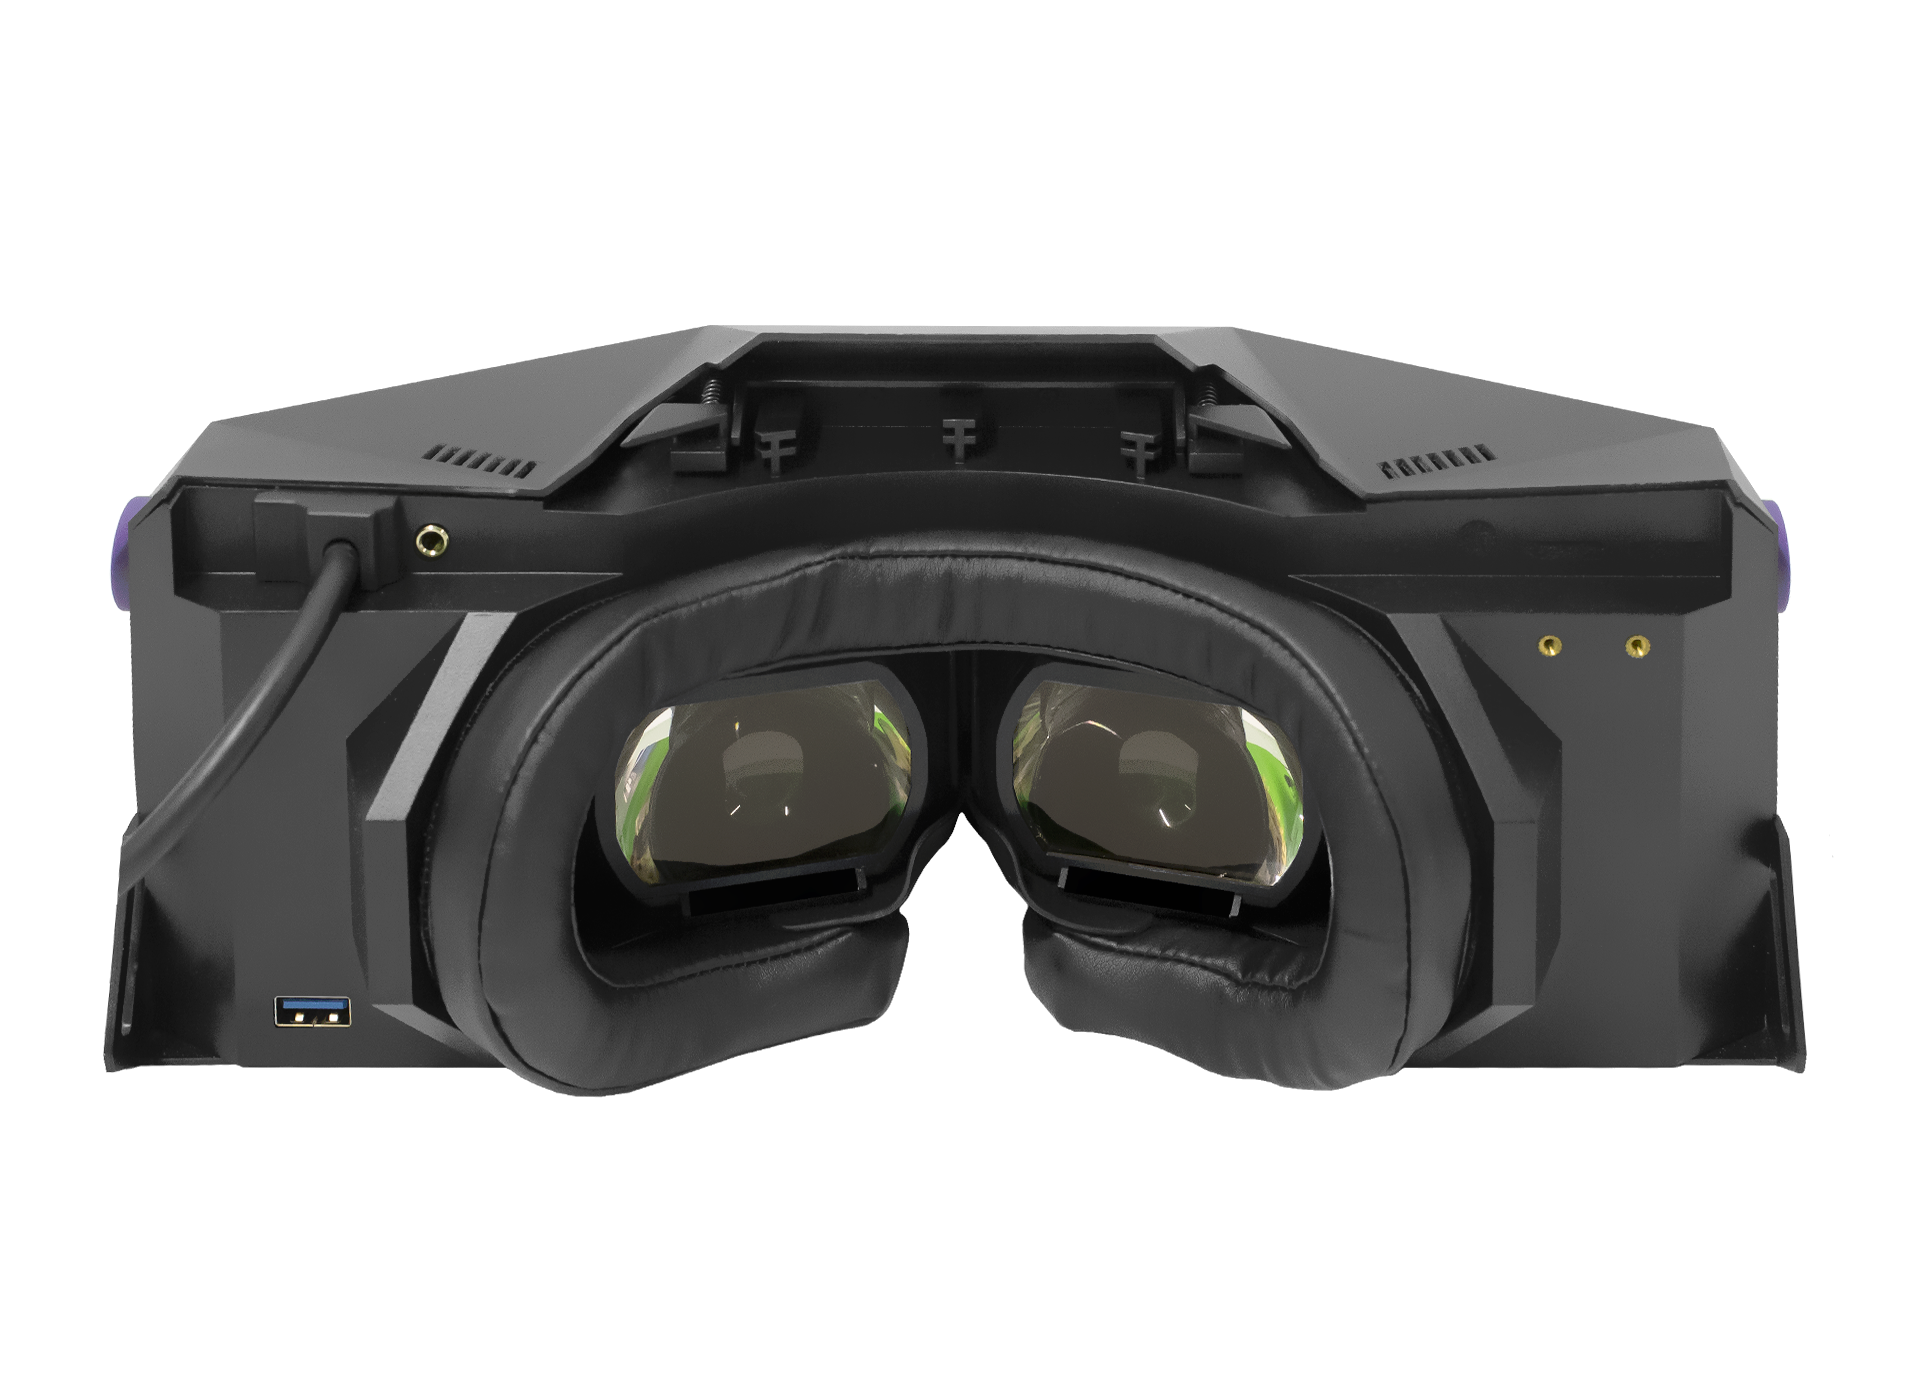 XTAL 8K professional VR headset lences view without head-strap